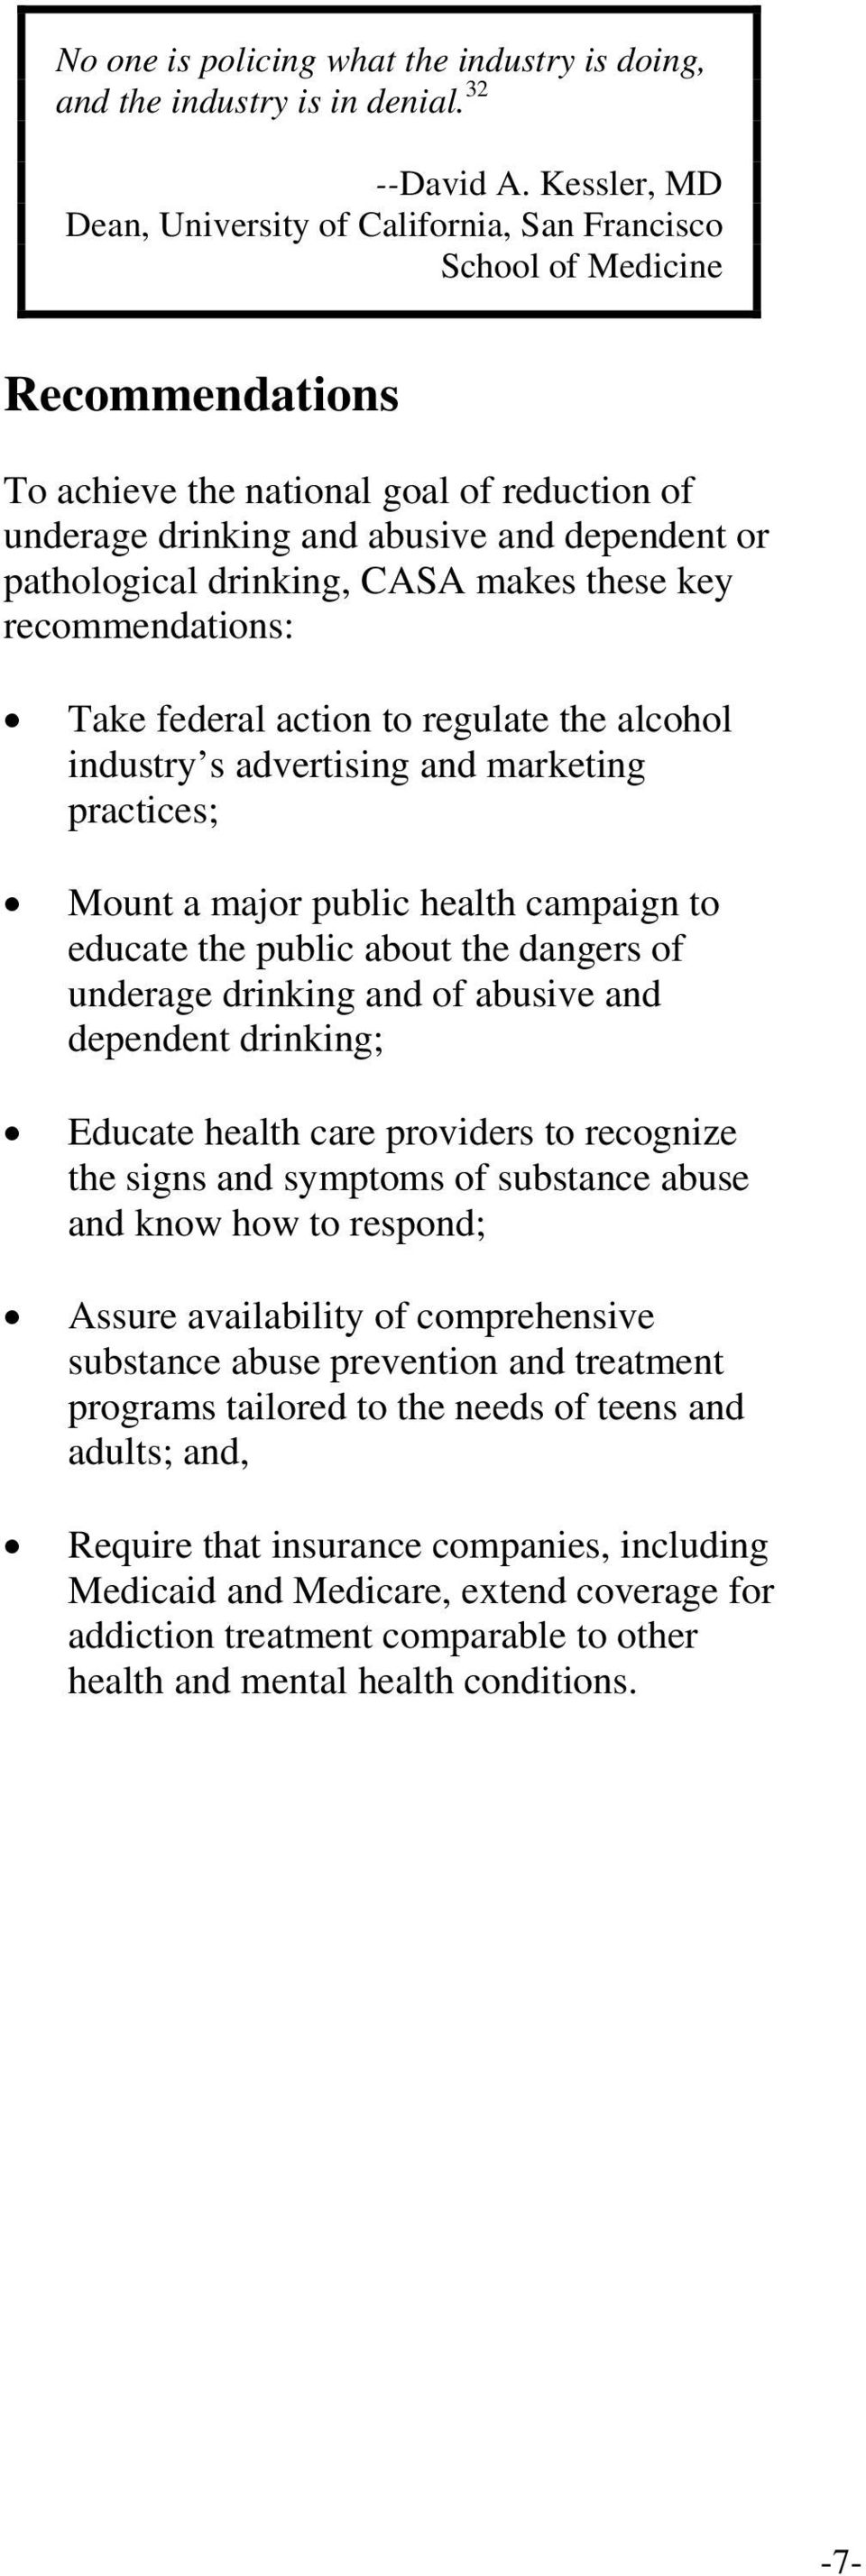 drinking, CASA makes these key recommendations: Take federal action to regulate the alcohol industry s advertising and marketing practices; Mount a major public health campaign to educate the public